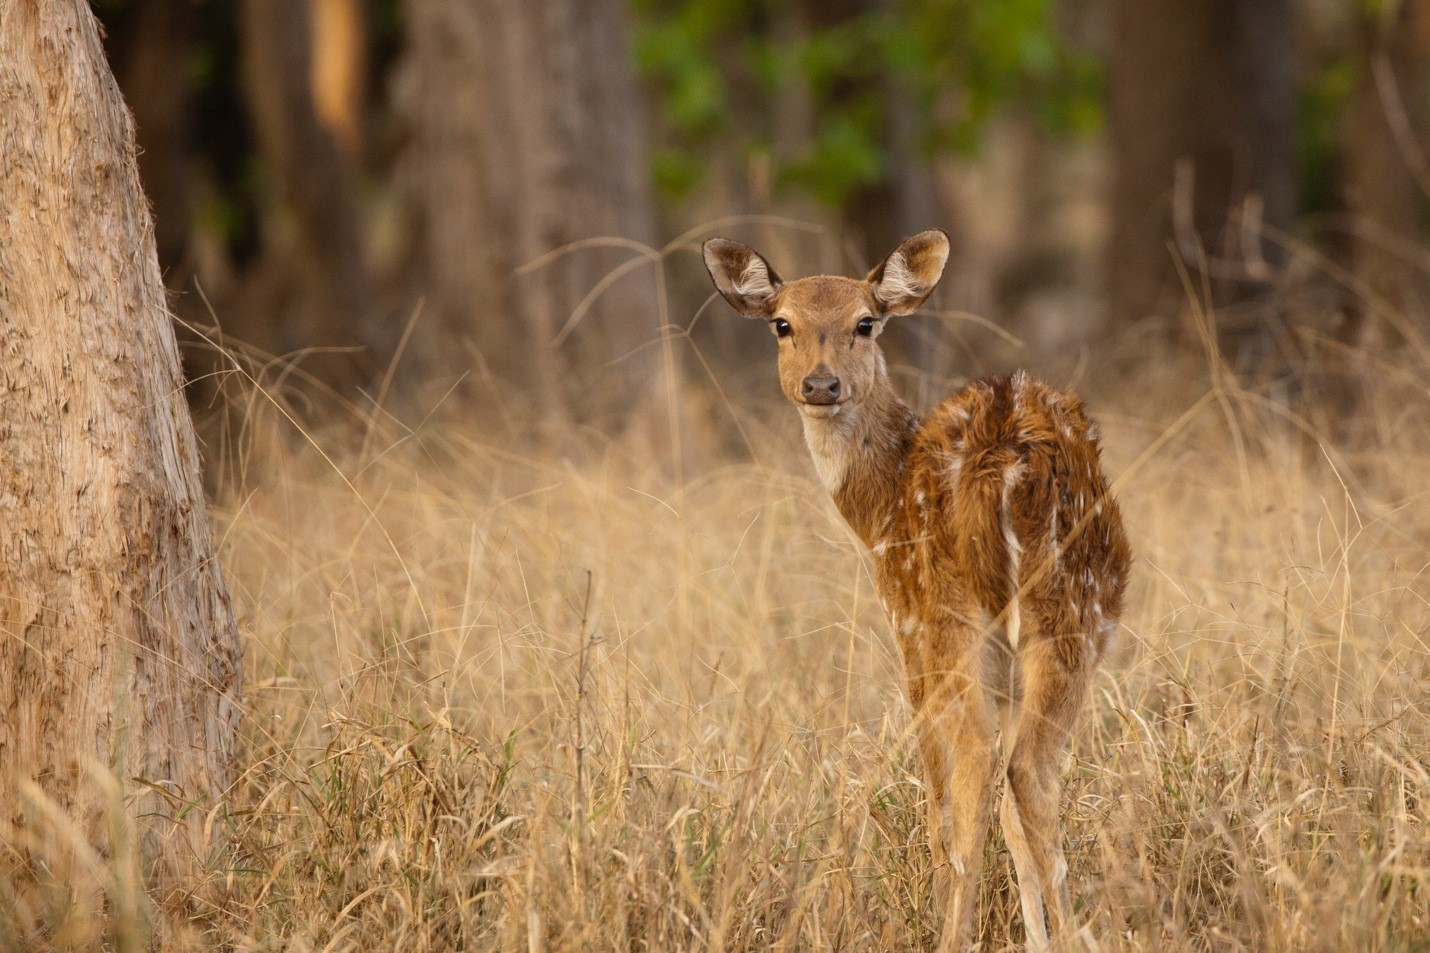 a spotted deer turns its head toward the camera